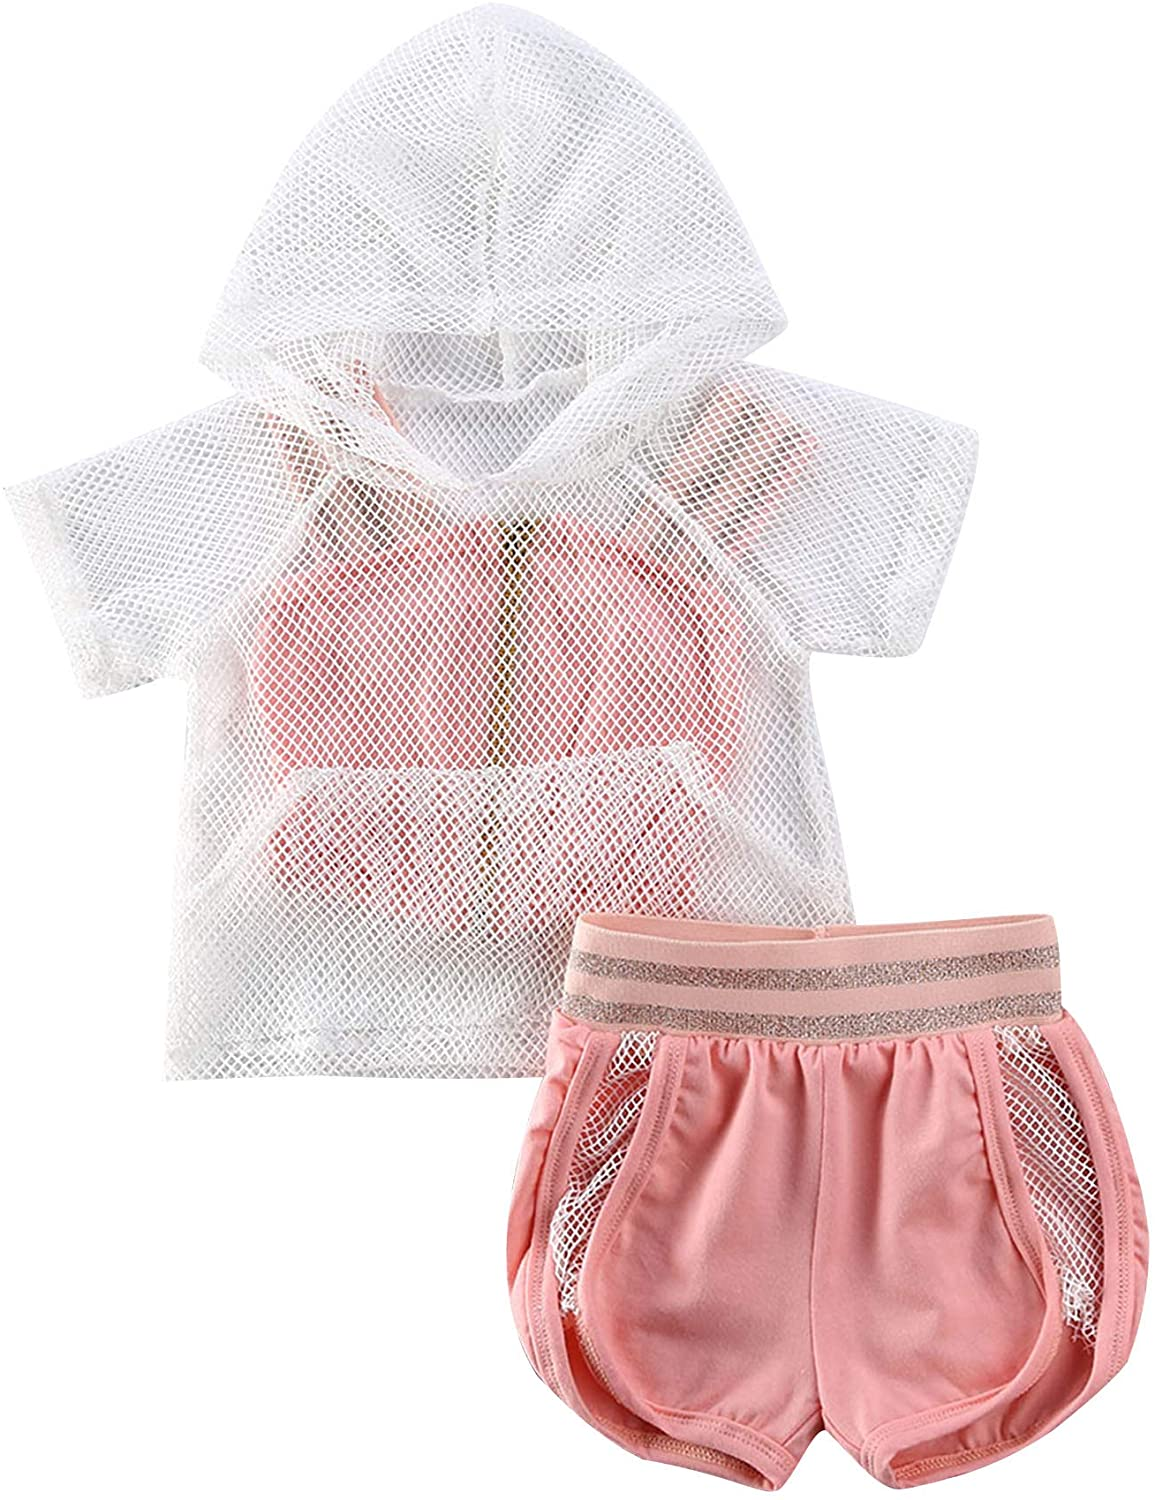 Toddler Baby Girl Clothes Mesh Hoodie Pullover Top+Zipper Strap Crop Top+Shorts 3PCS Tracksuit Sports Set